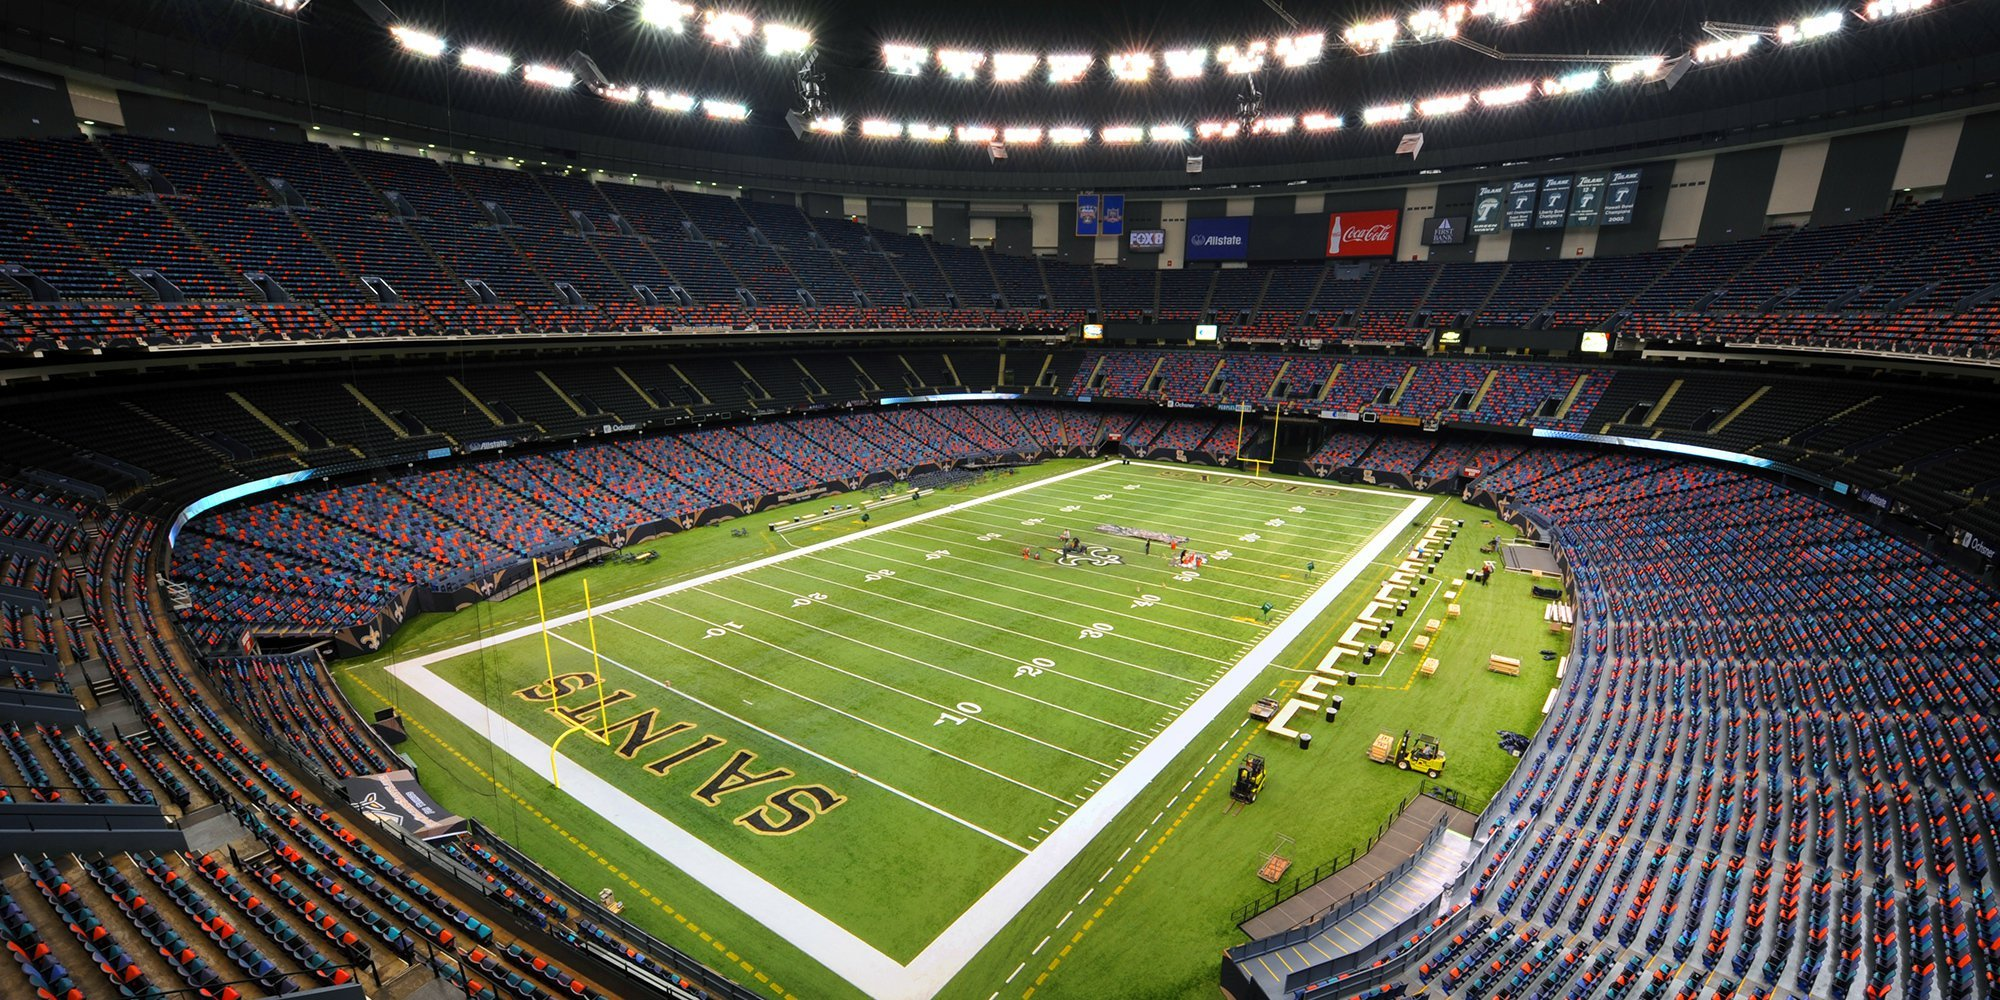 This photo is a picture of the inside of the Superdome. Here is the field where the New Orleans Saints play their home games.